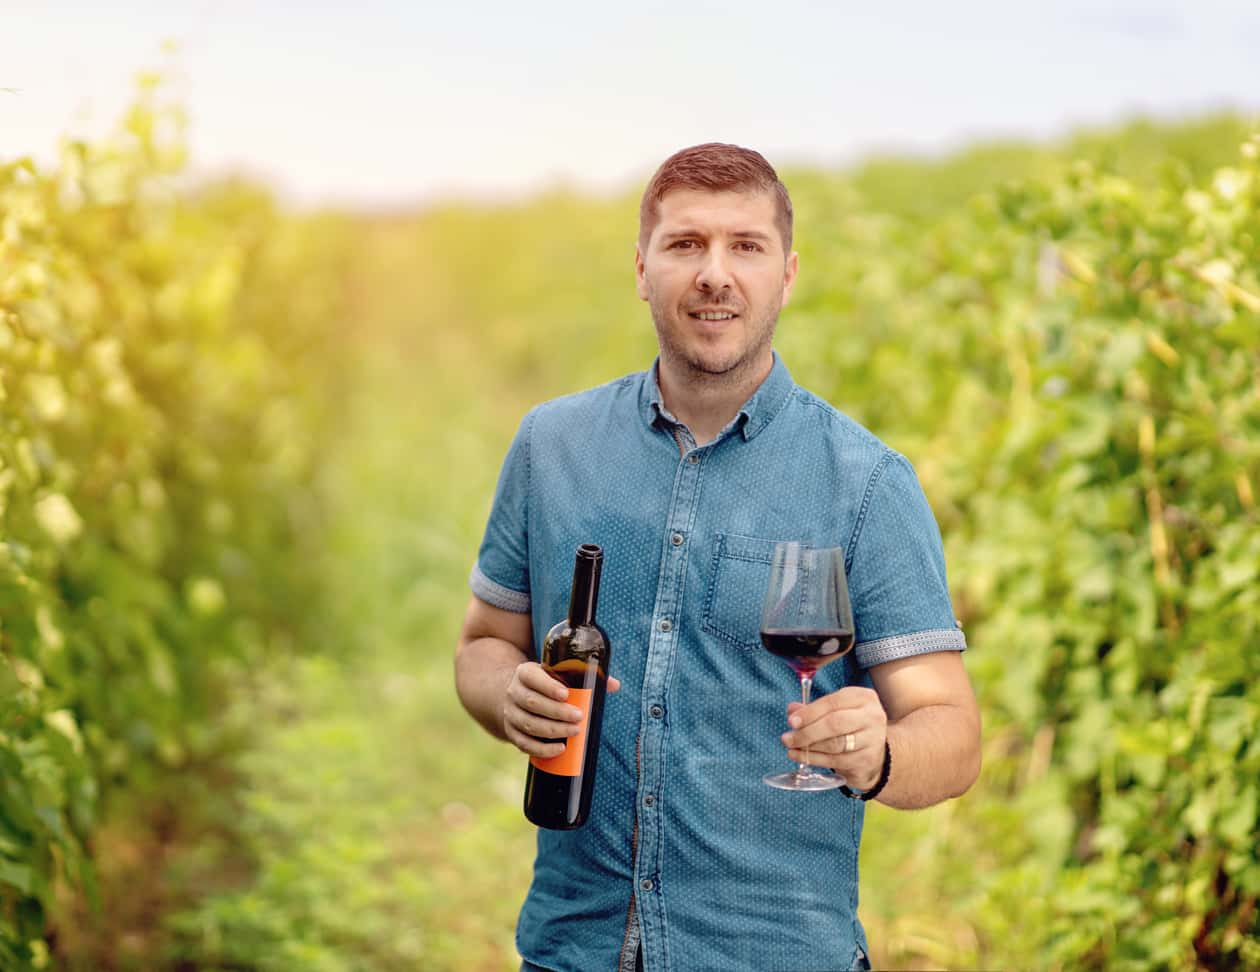 Man holding a bottle of wine in a vineyard